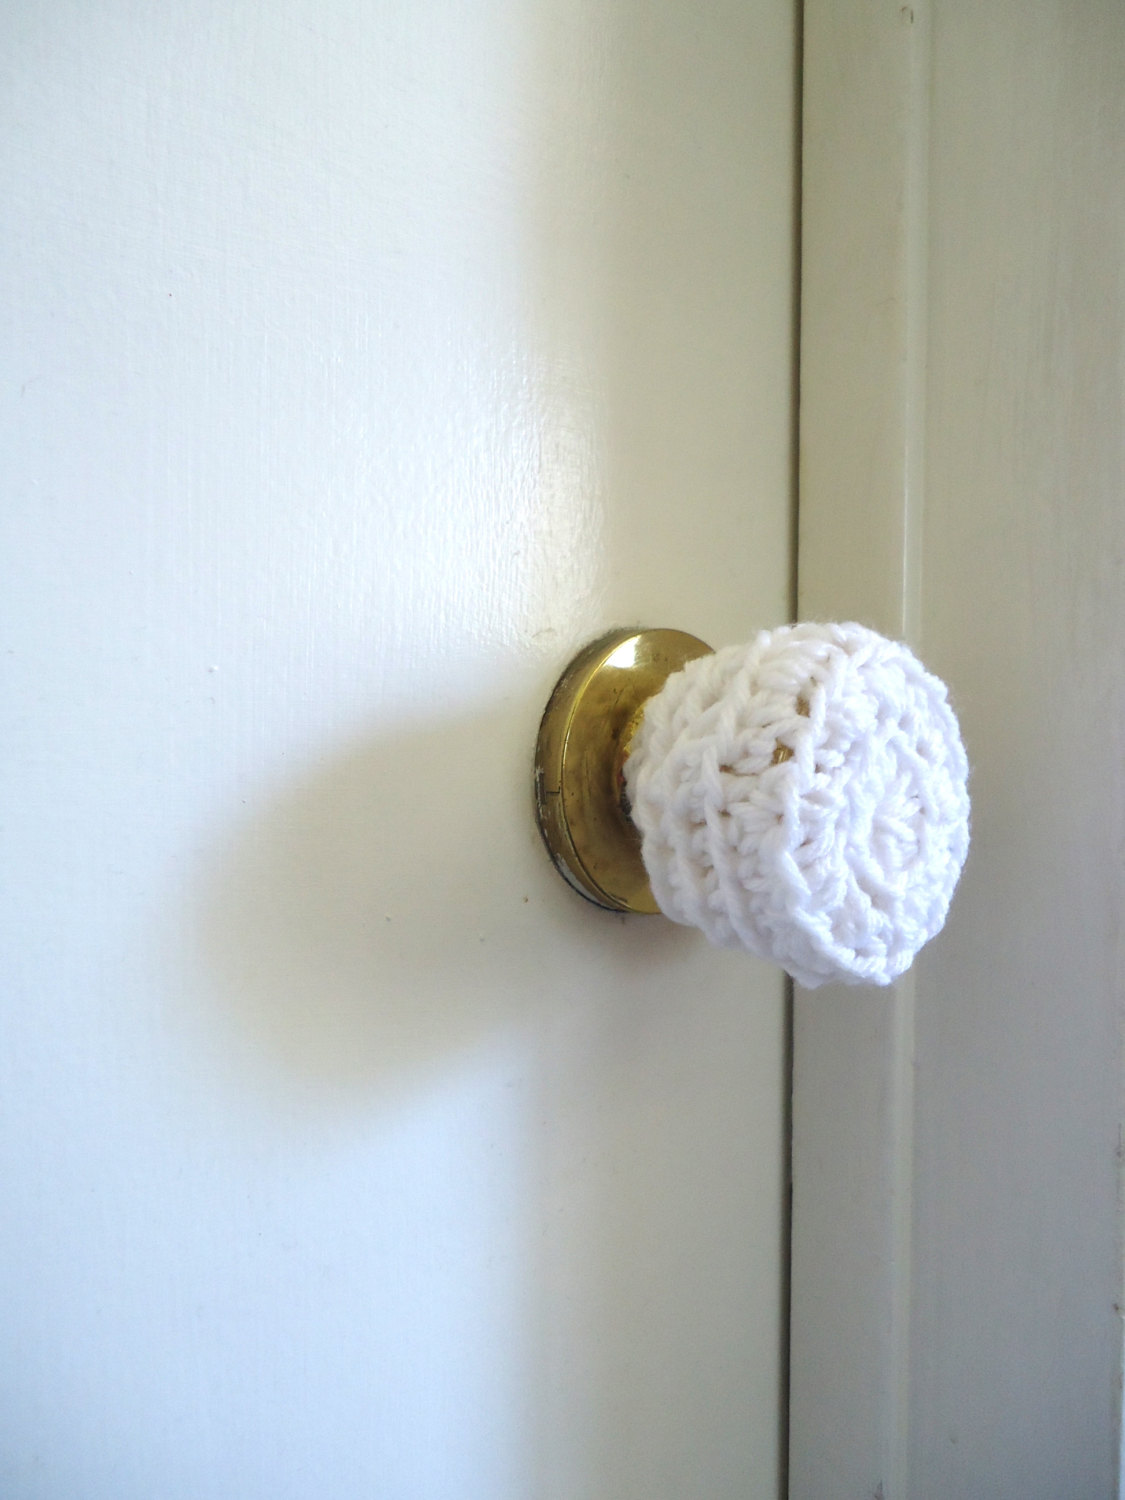 child safety door knob covers photo - 3